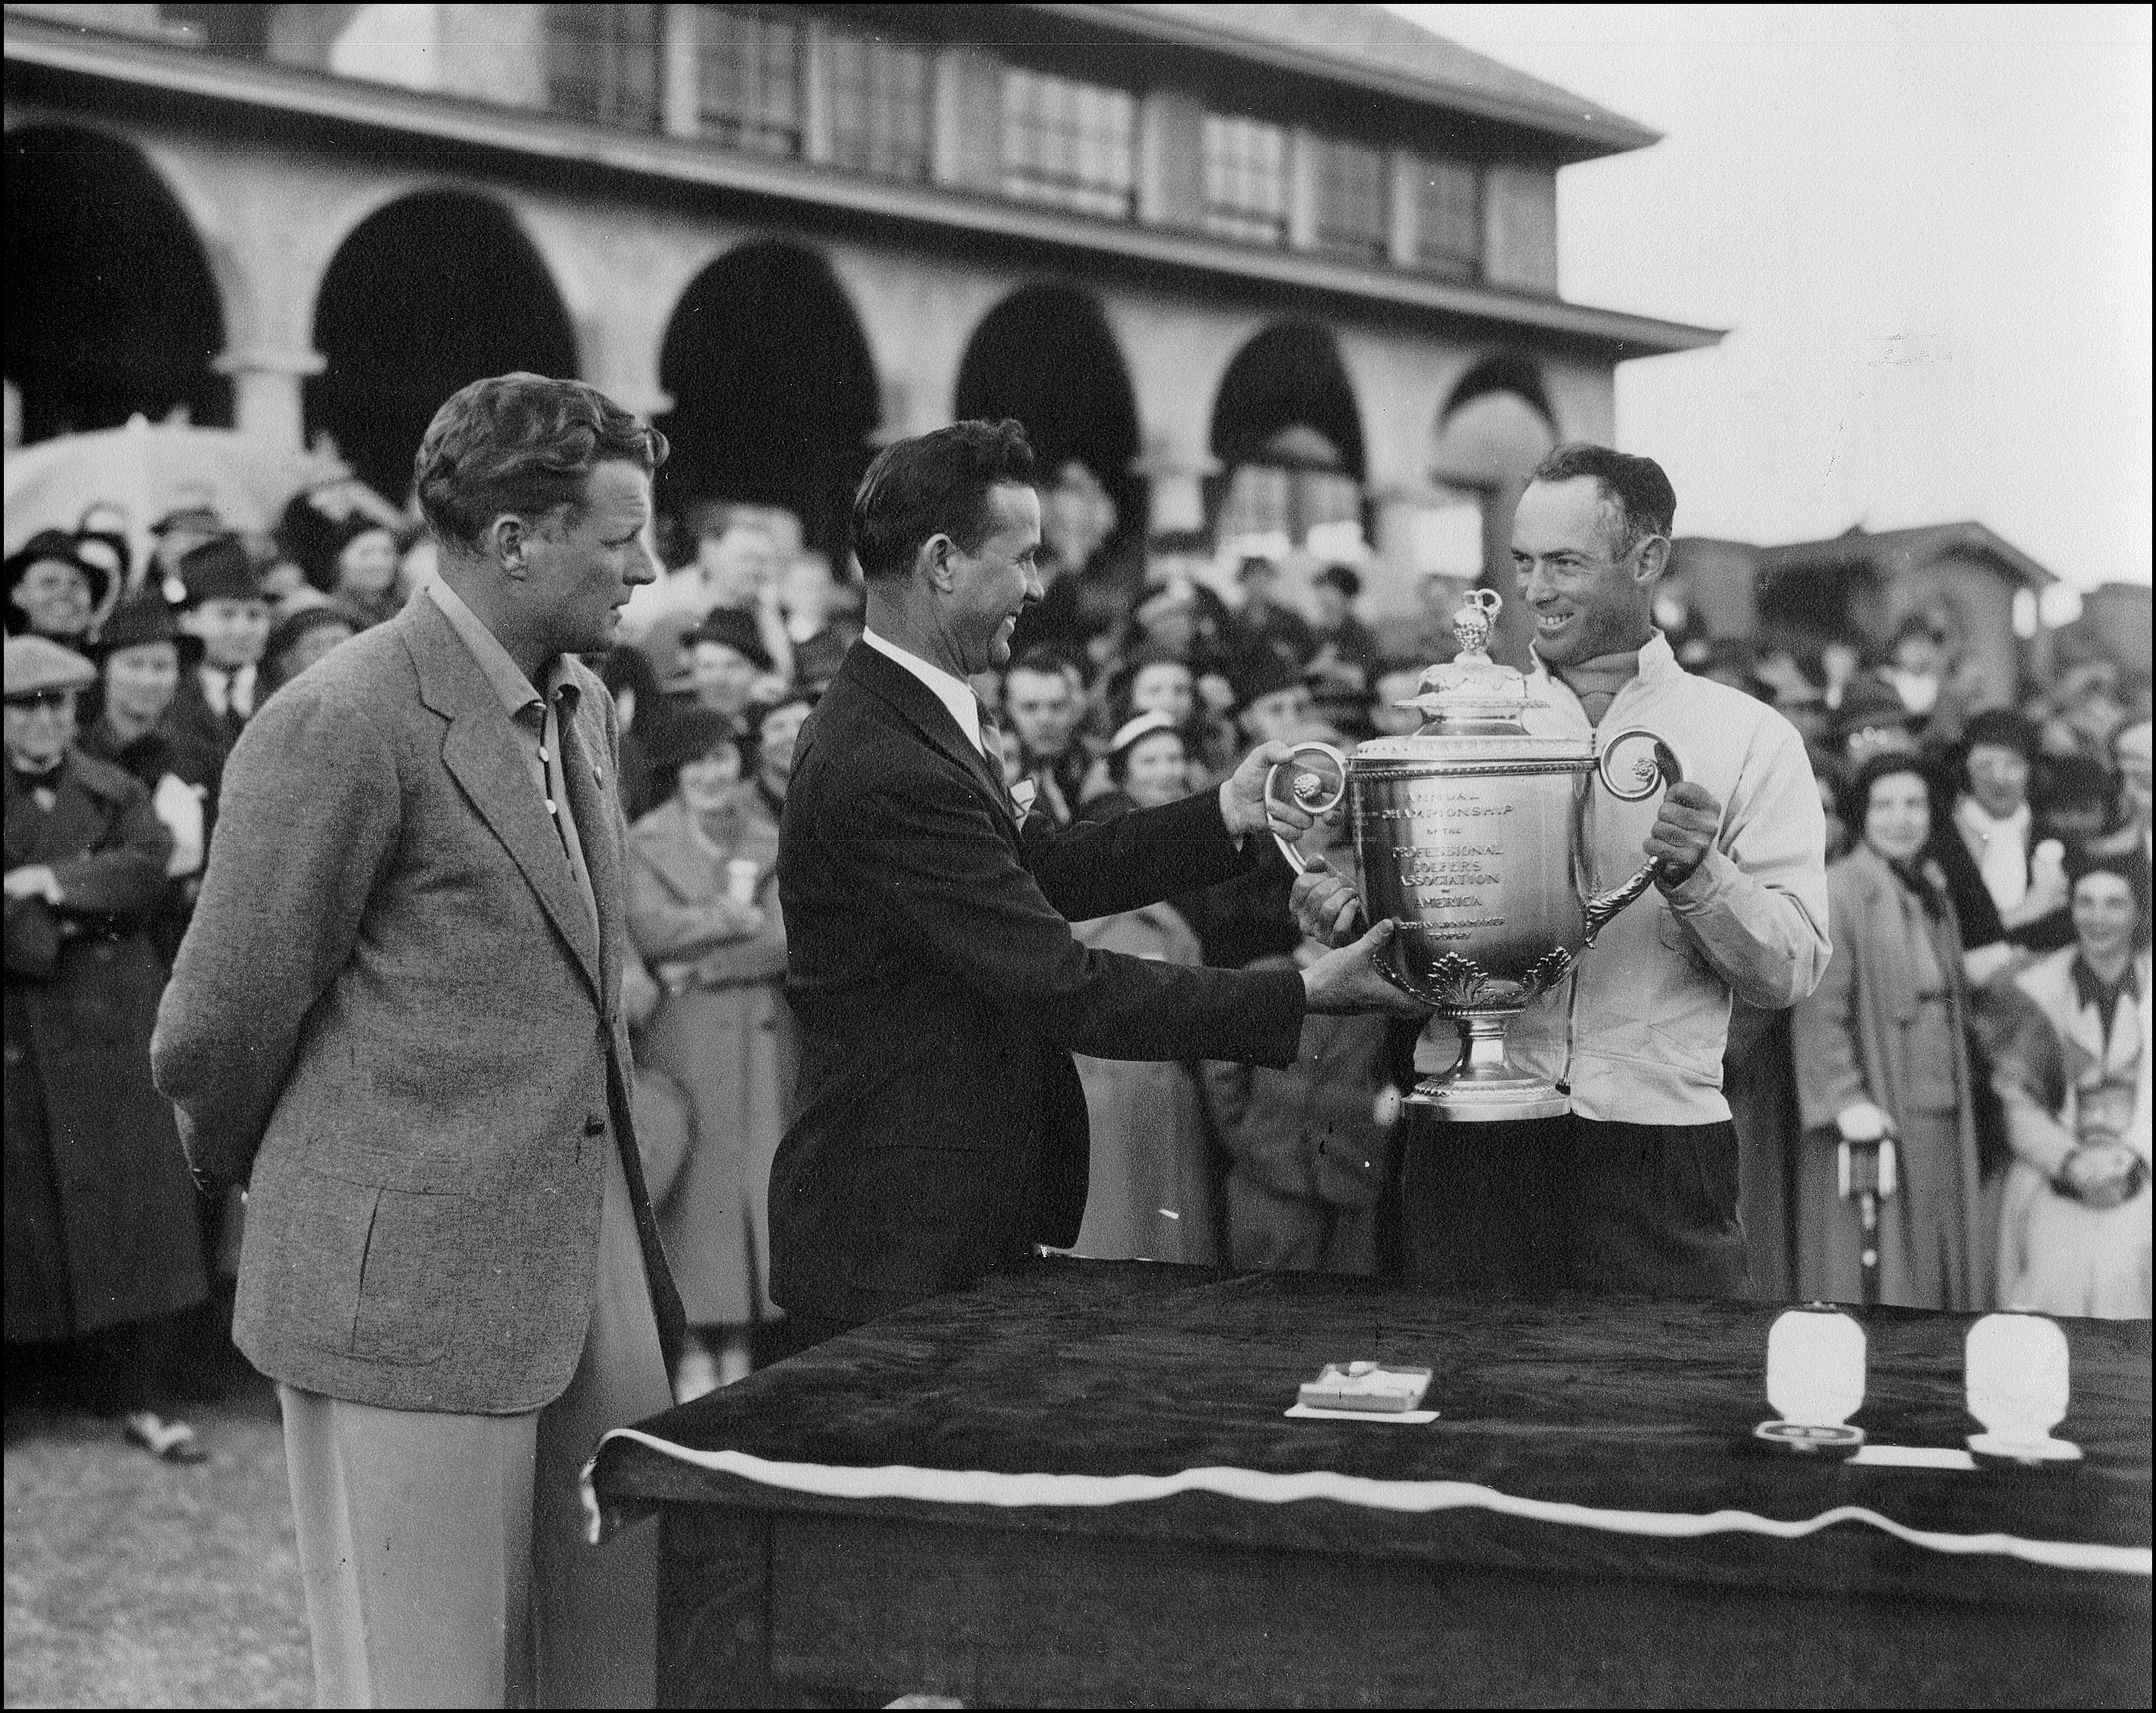 Denny Shute receives the Wannamaker Trophy for winning the 1936 PGA Championship at Pinehurst.